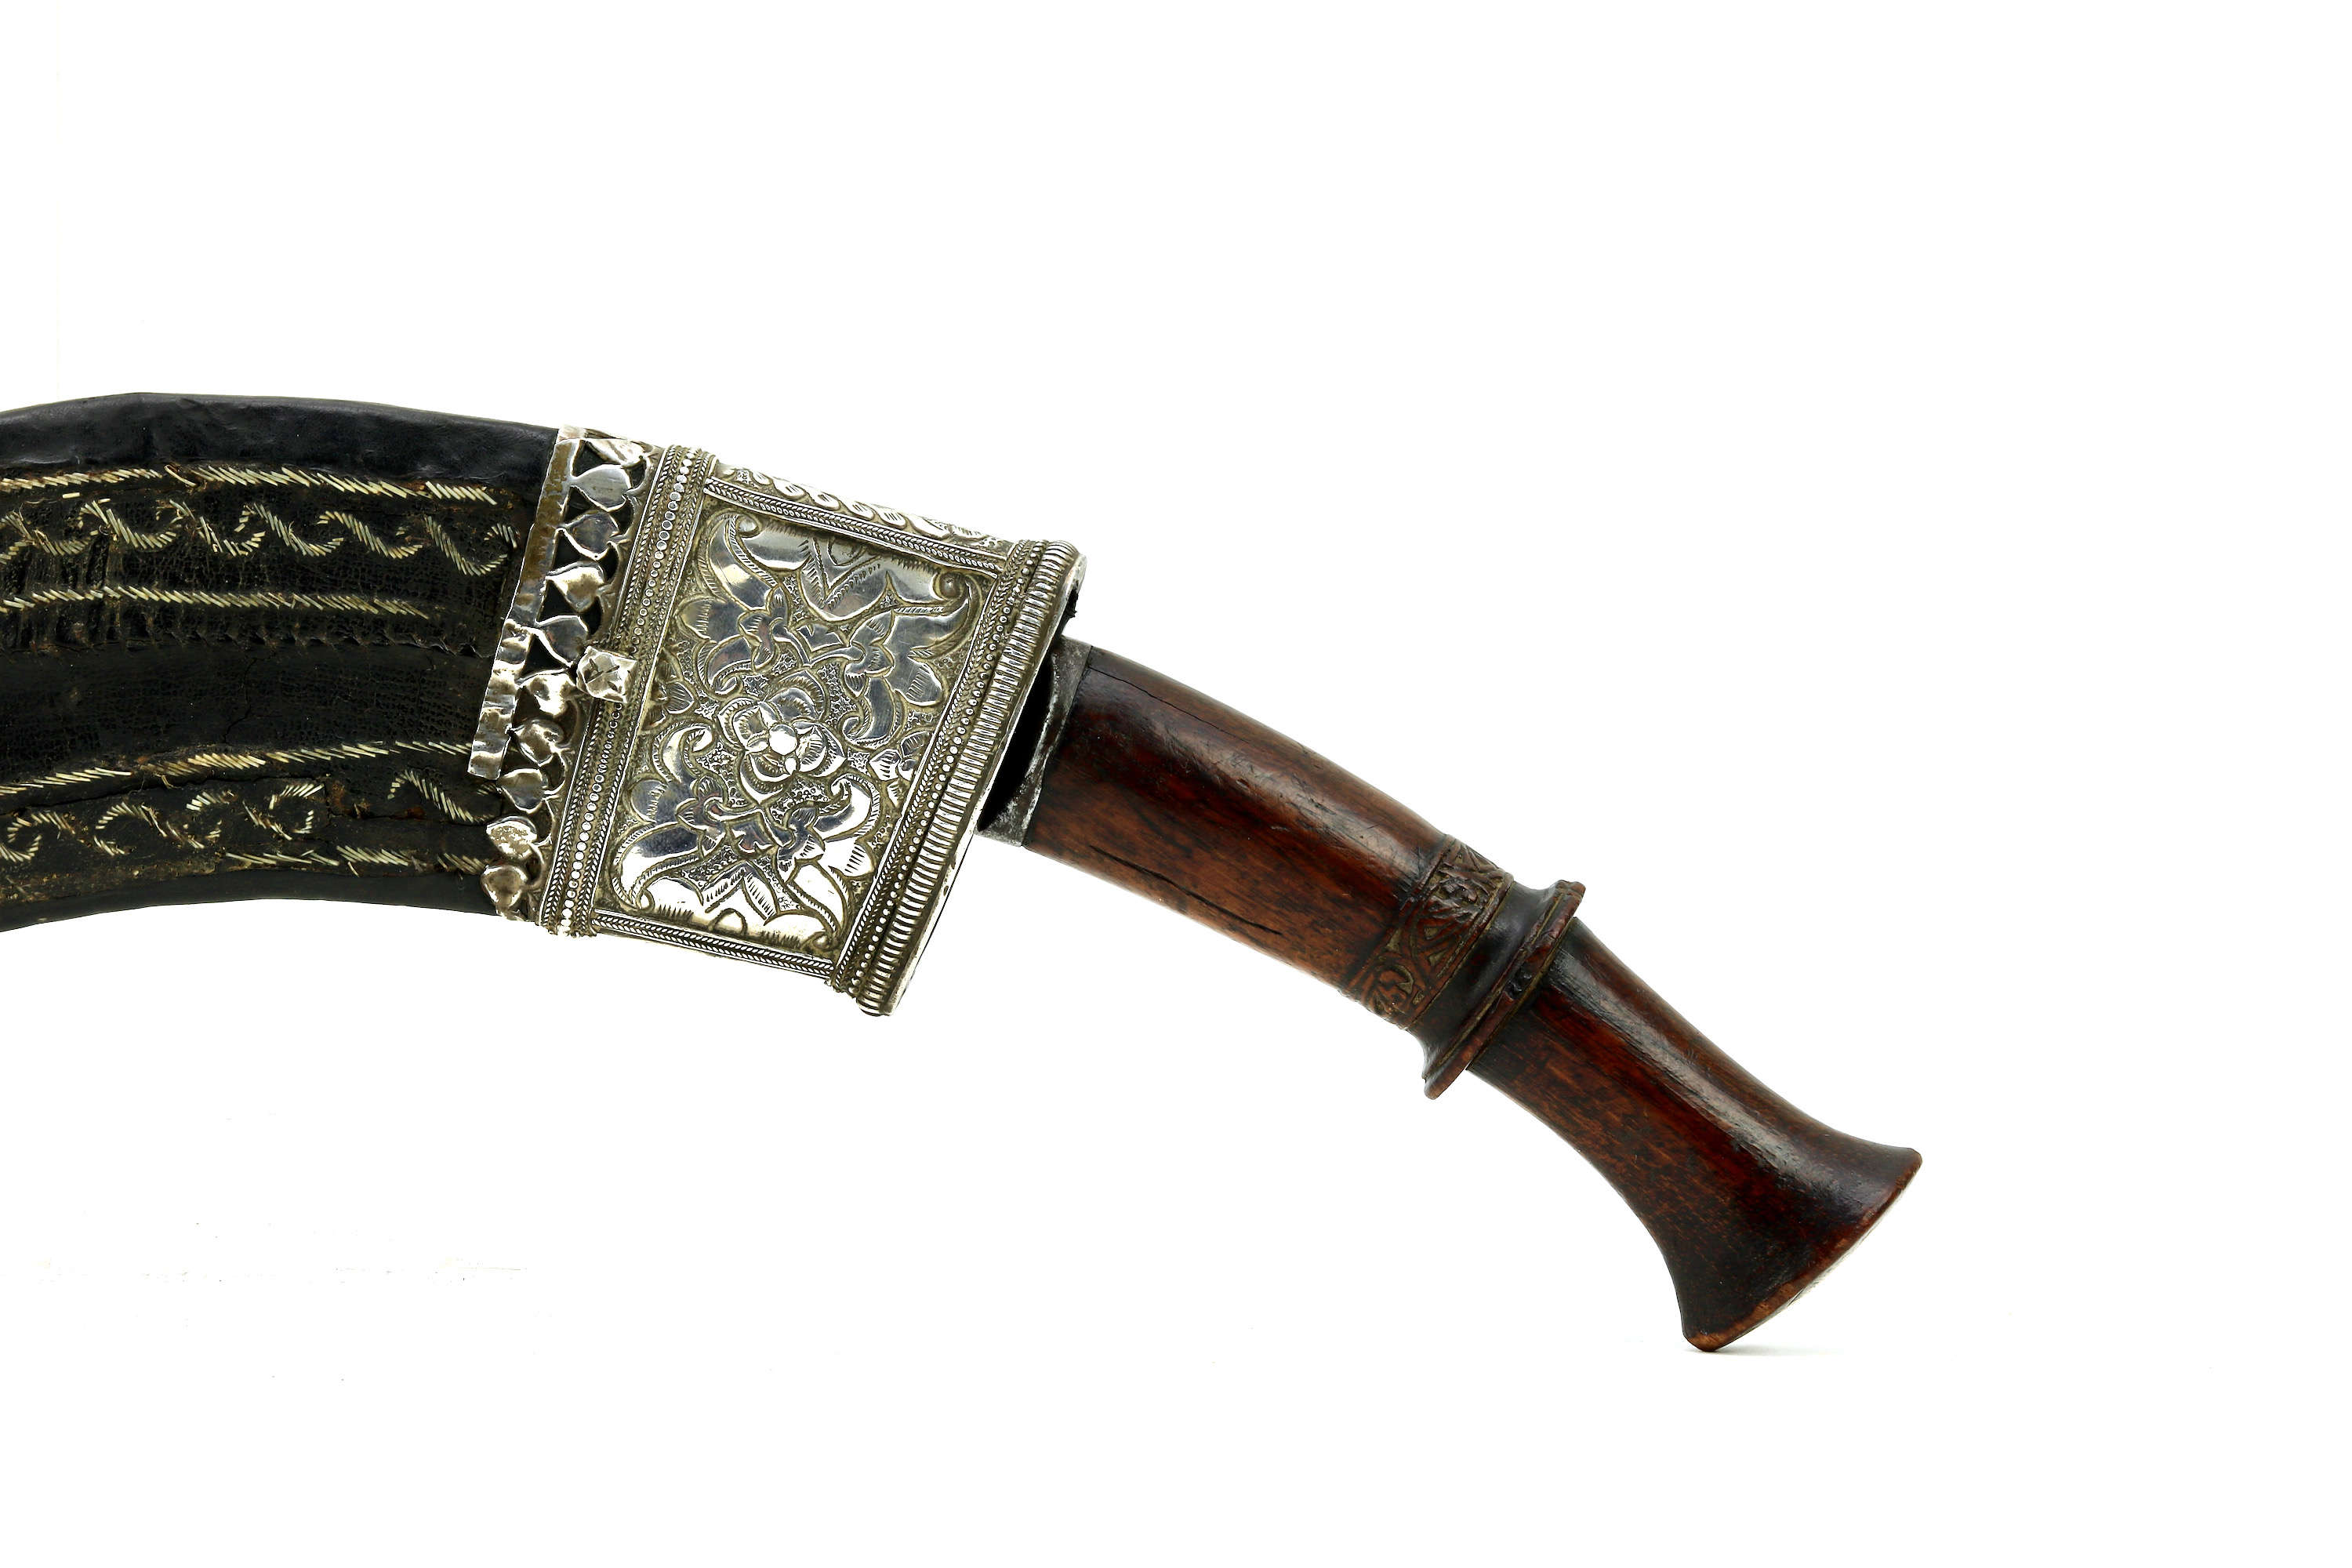 Early 19th century hanshee khukuri with left oriented scabbard